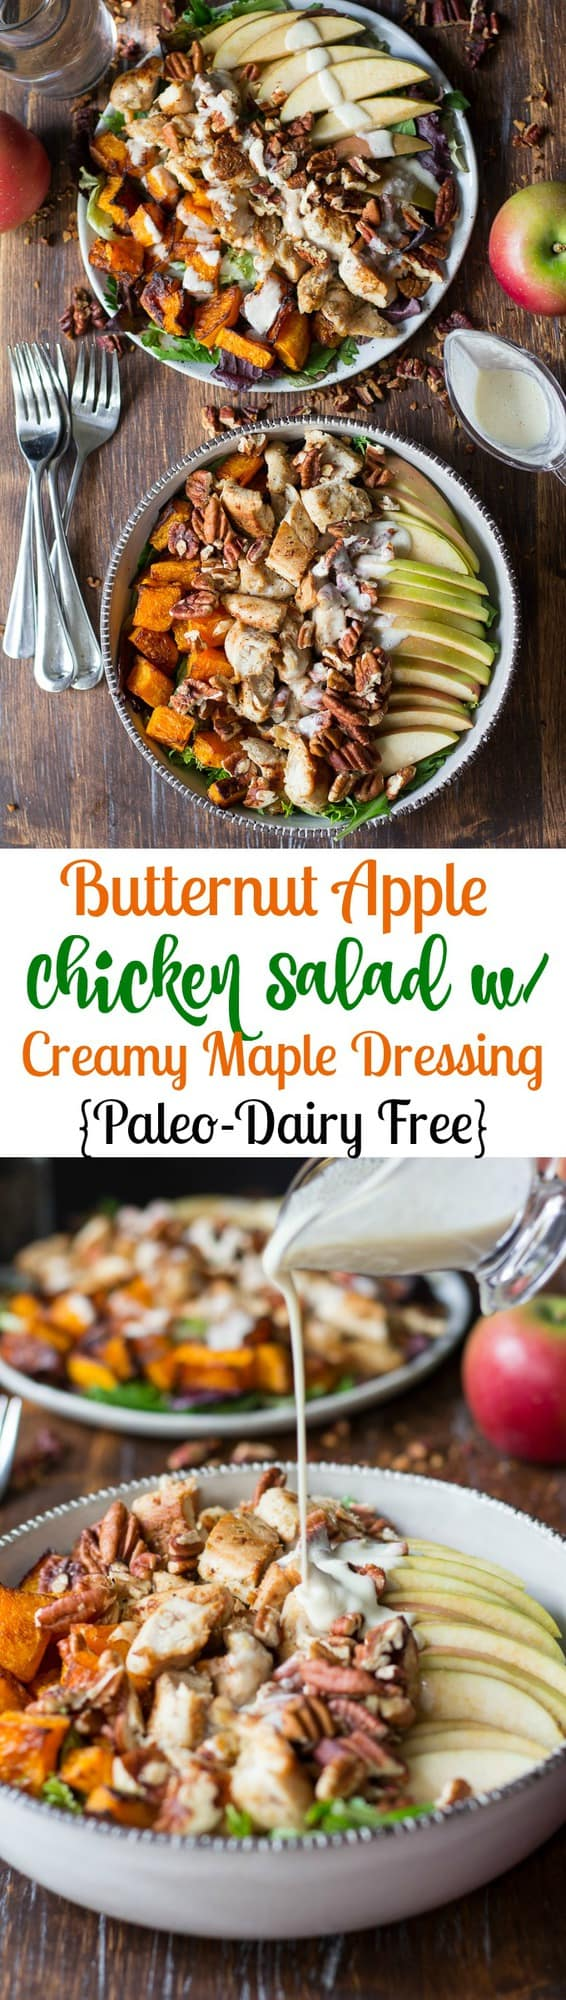 Paleo Roasted Butternut Apple Chicken Salad topped with crunchy pecans and creamy maple cider dressing - gluten free, dairy free, Paleo